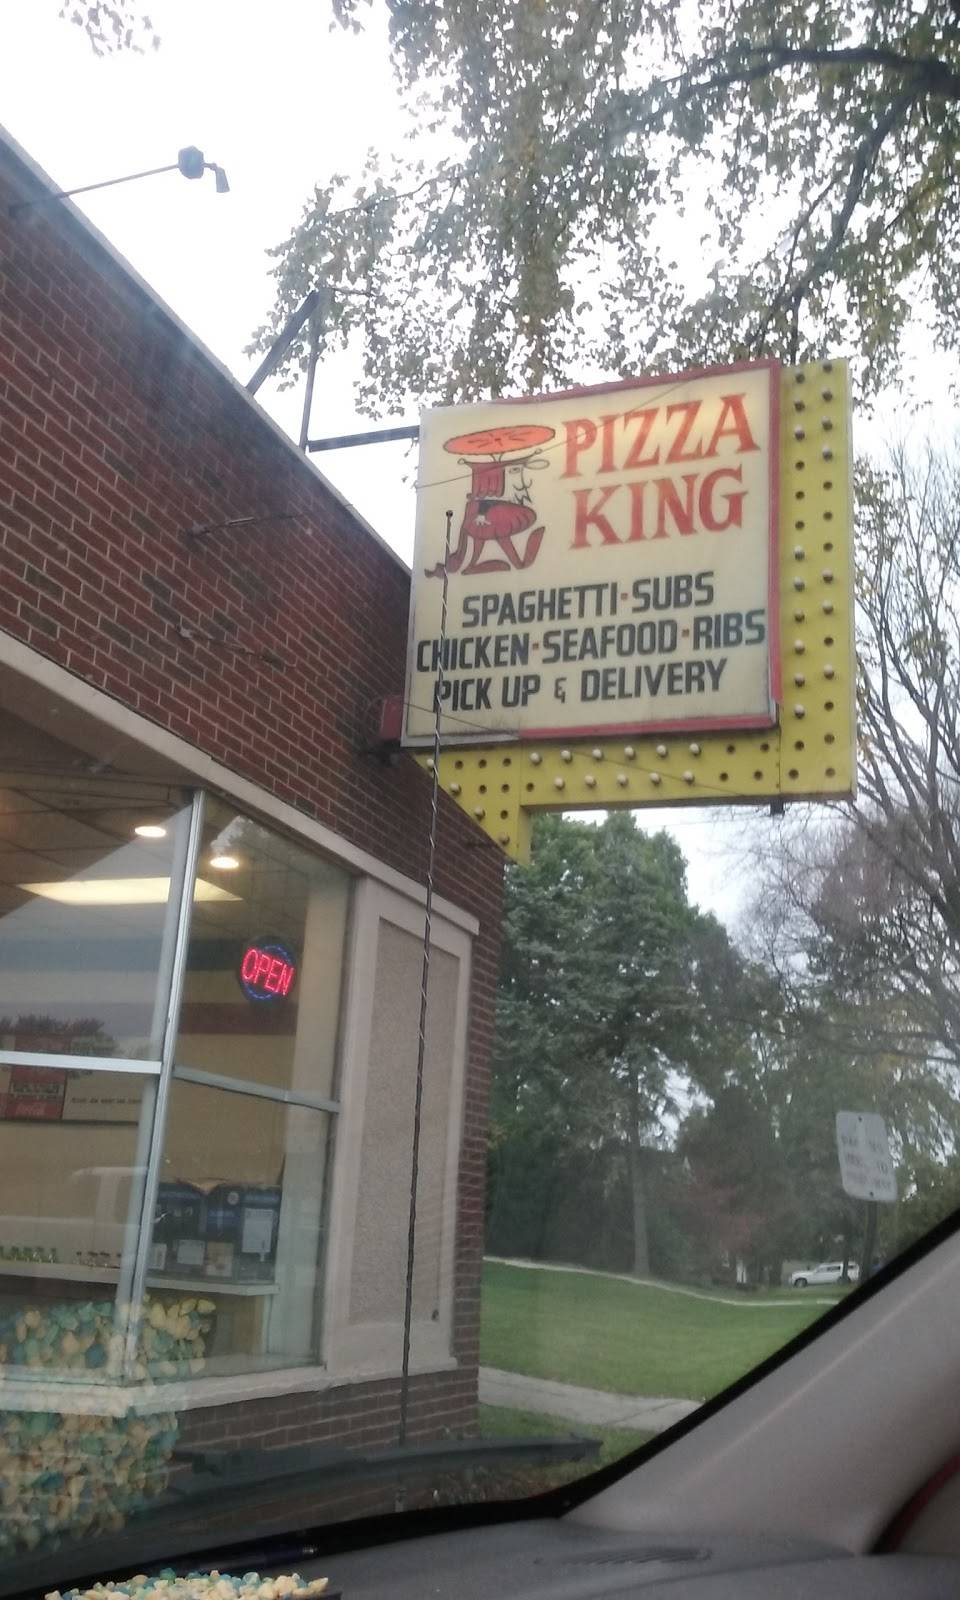 Pizza King | restaurant | 9170 Mortenview Dr, Taylor, MI 48180, USA | 3132921500 OR +1 313-292-1500